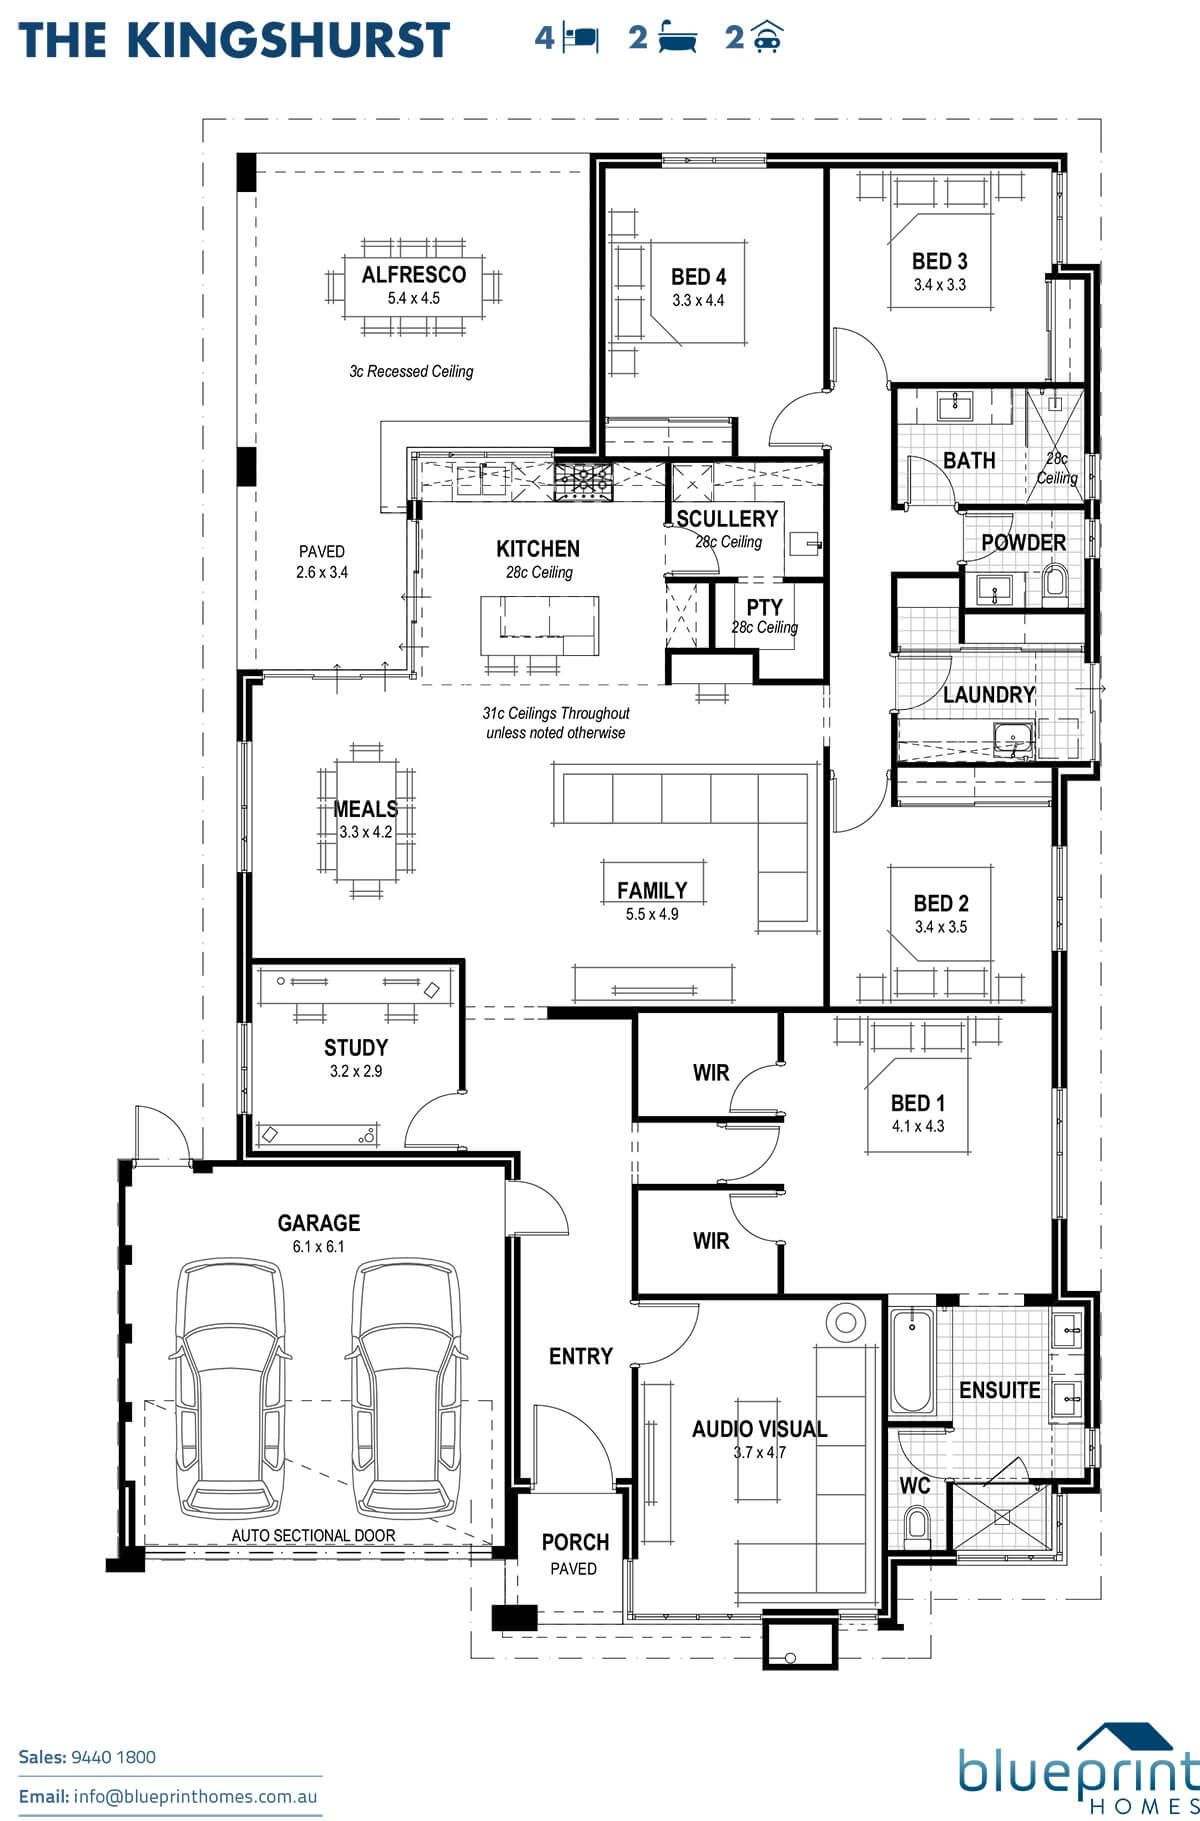 Display home haynes the kingshurst dream home pinterest the kingshurst floorplan malvernweather Gallery